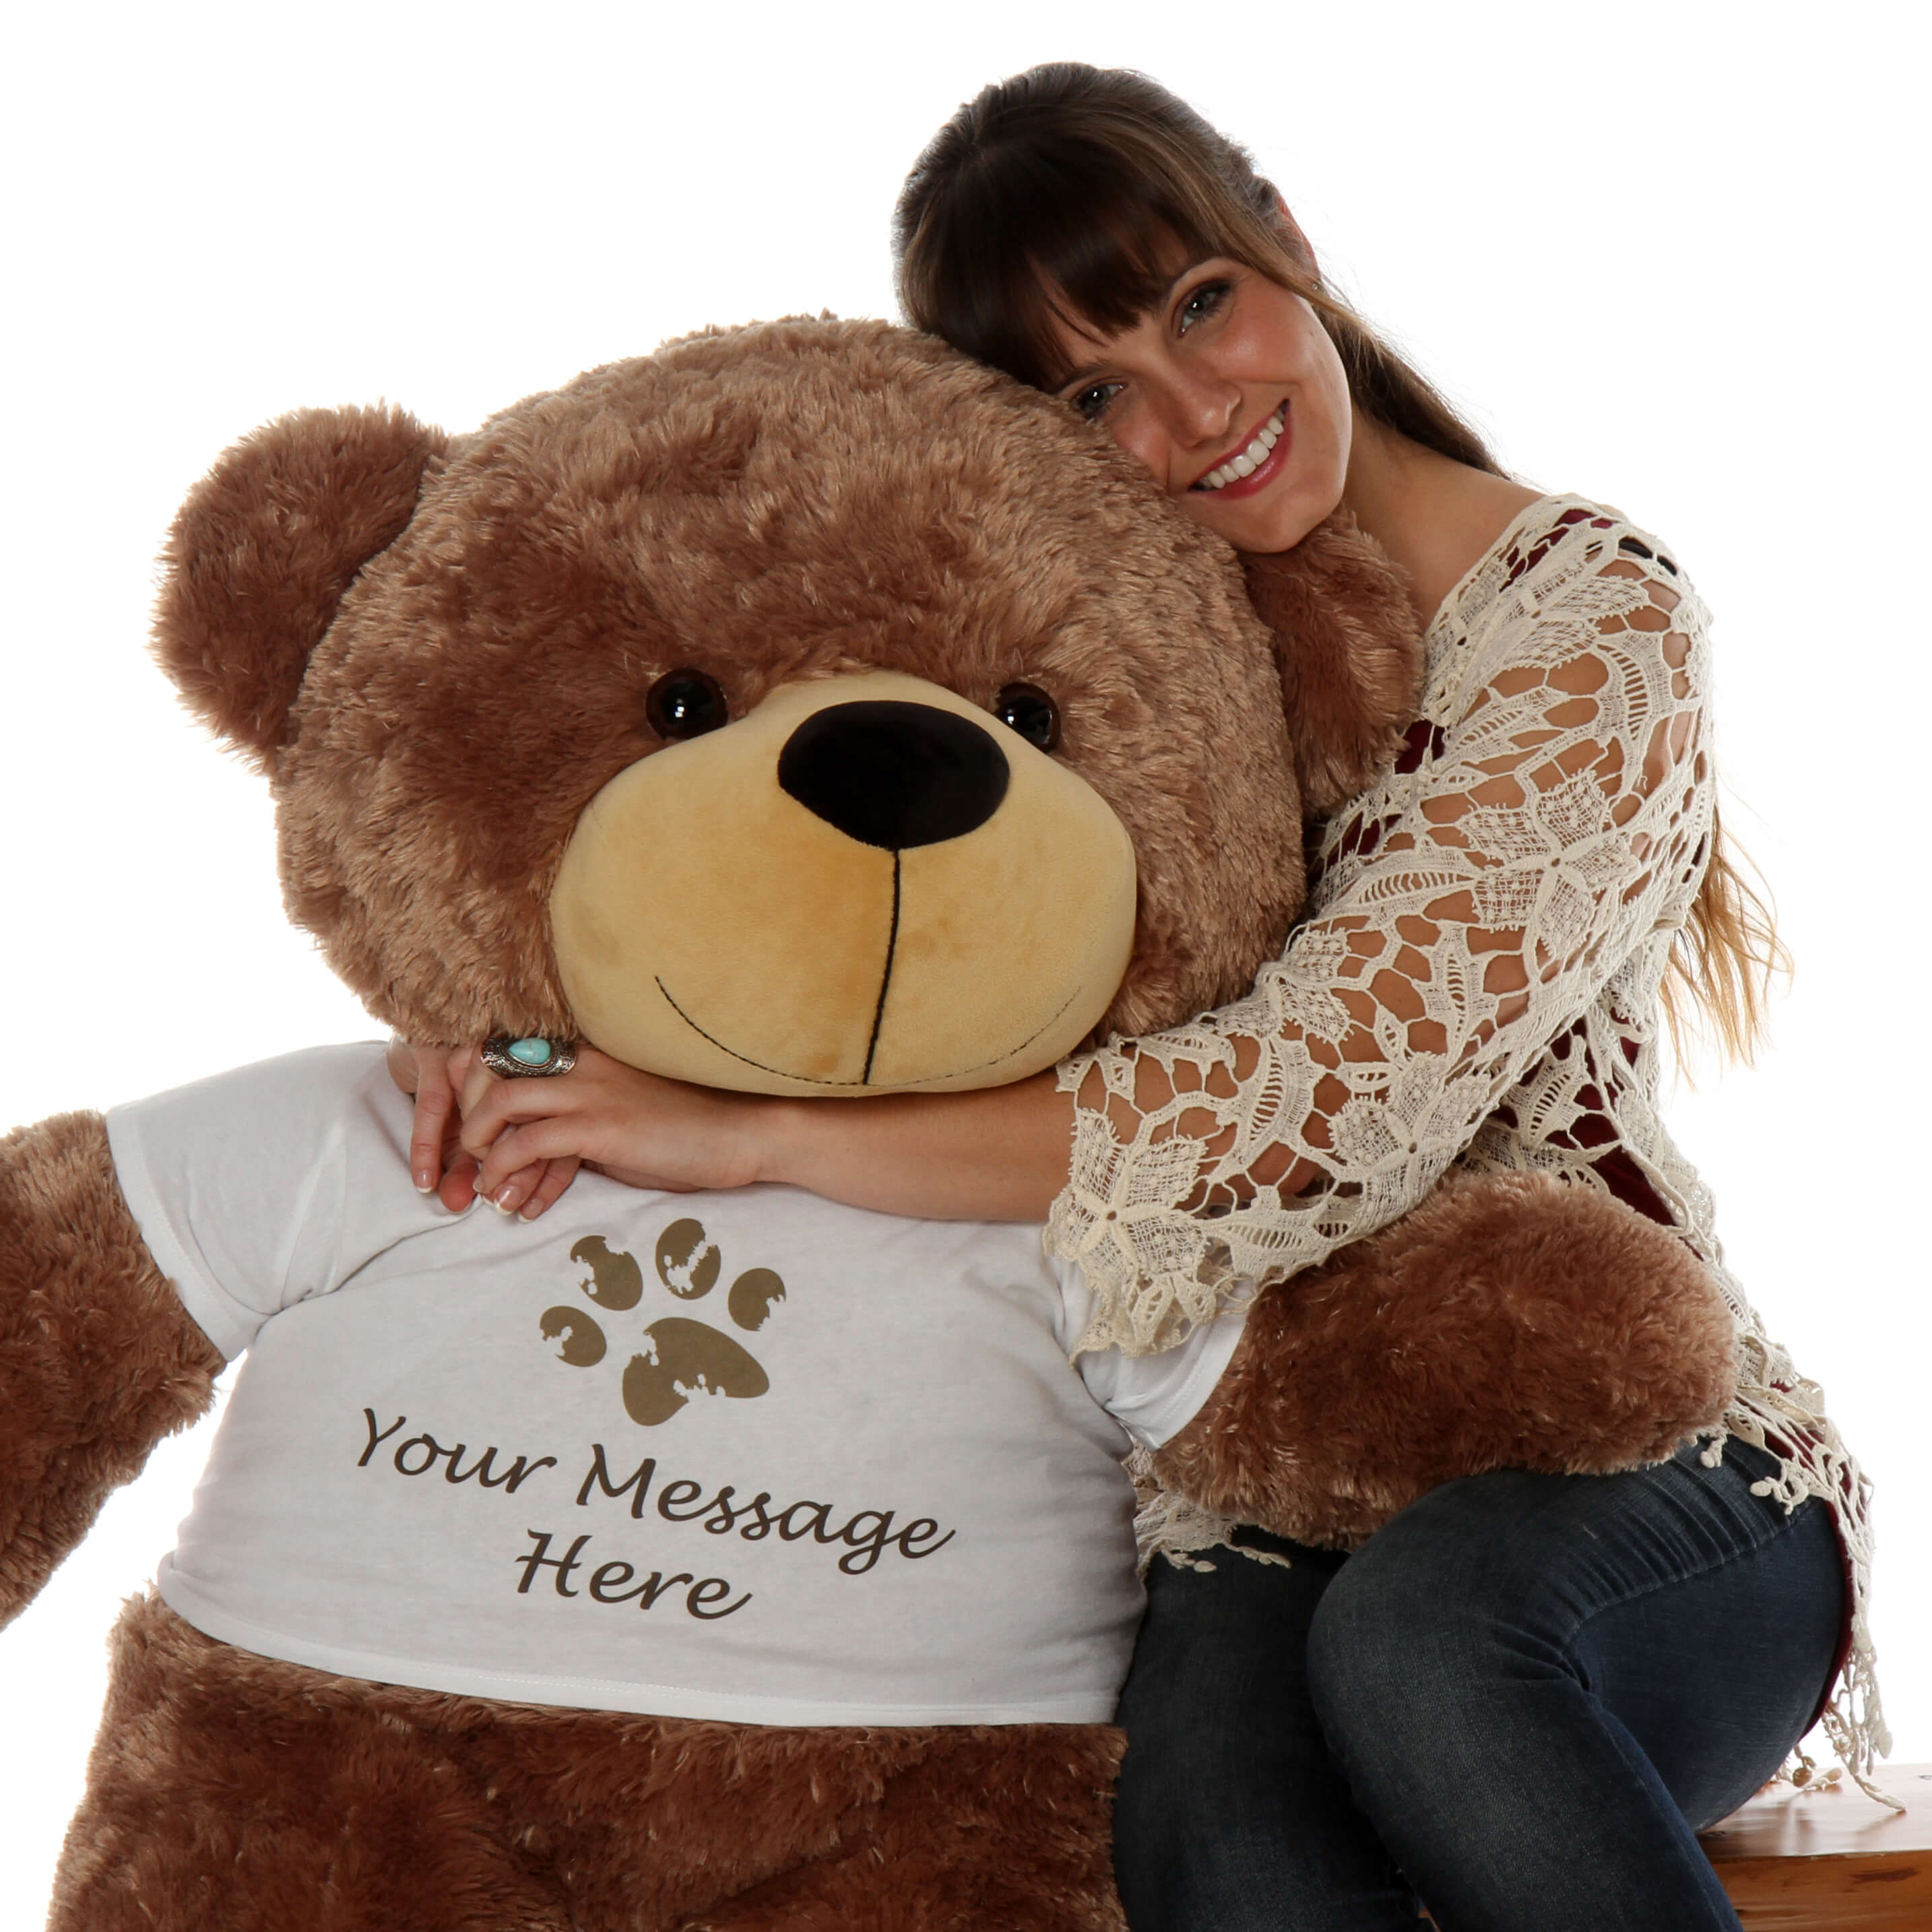 sunny-cuddles-is-a-personalized-teddy-bear-with-a-paw-stamp-t-shirt-that-you-can-customize.-this-cute-mocha-brown-teddy-bear-1.jpg